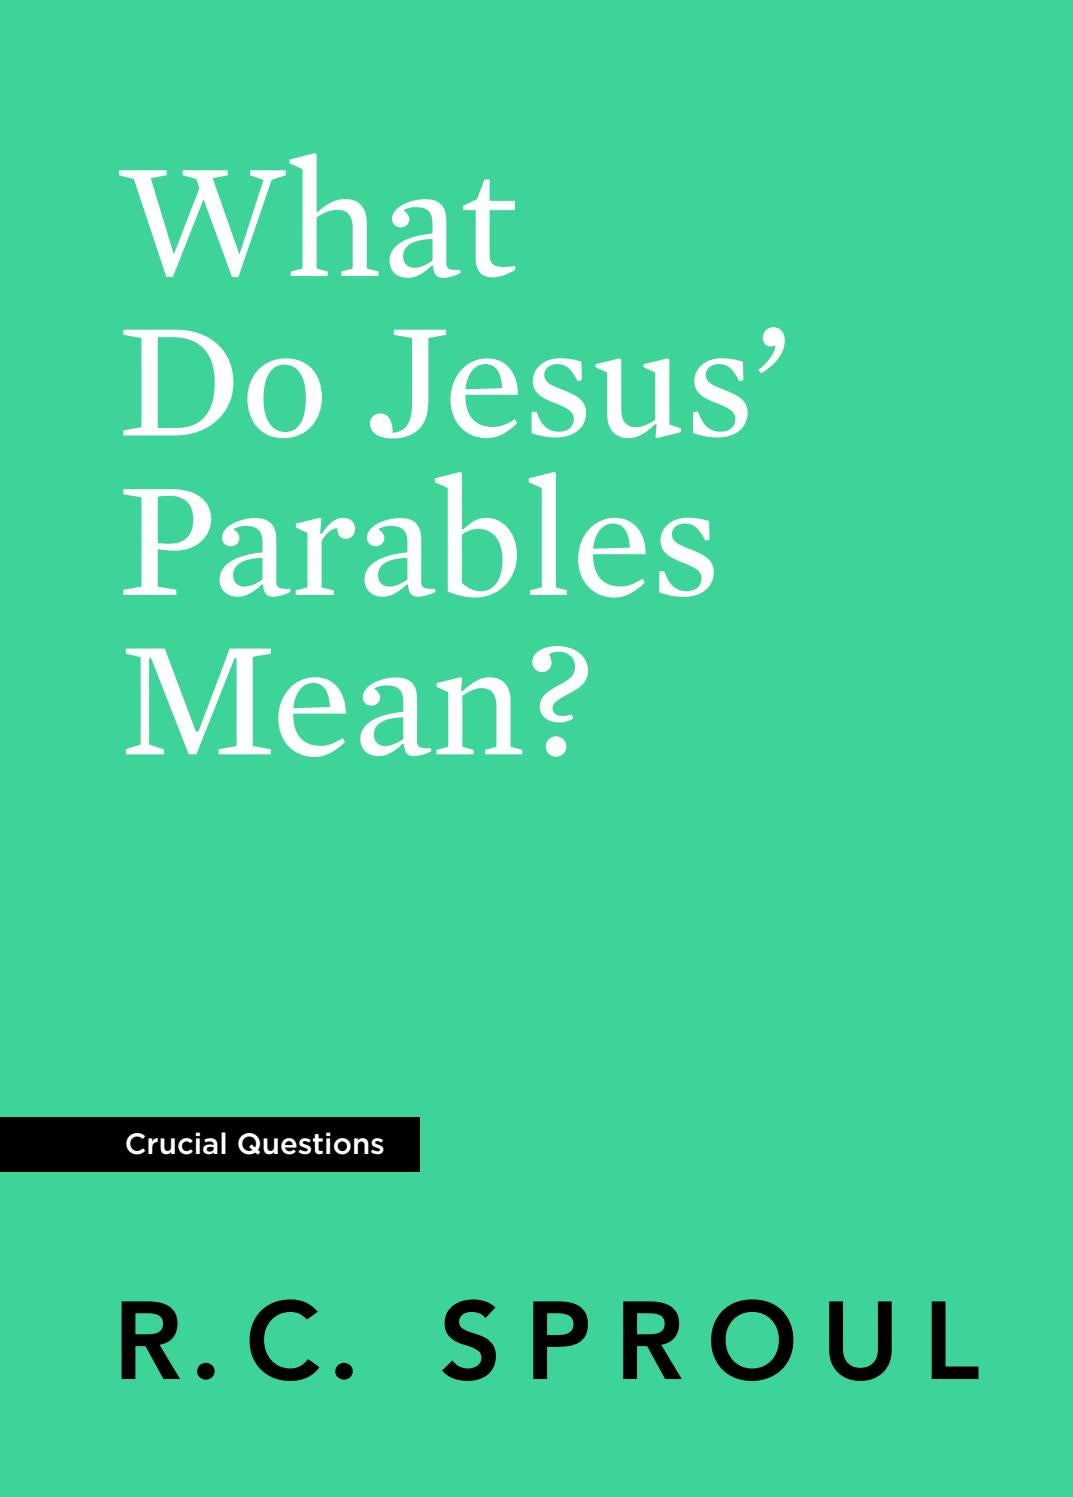 What Do Jesus' Parables Mean? - Sample Chapter by Ligonier